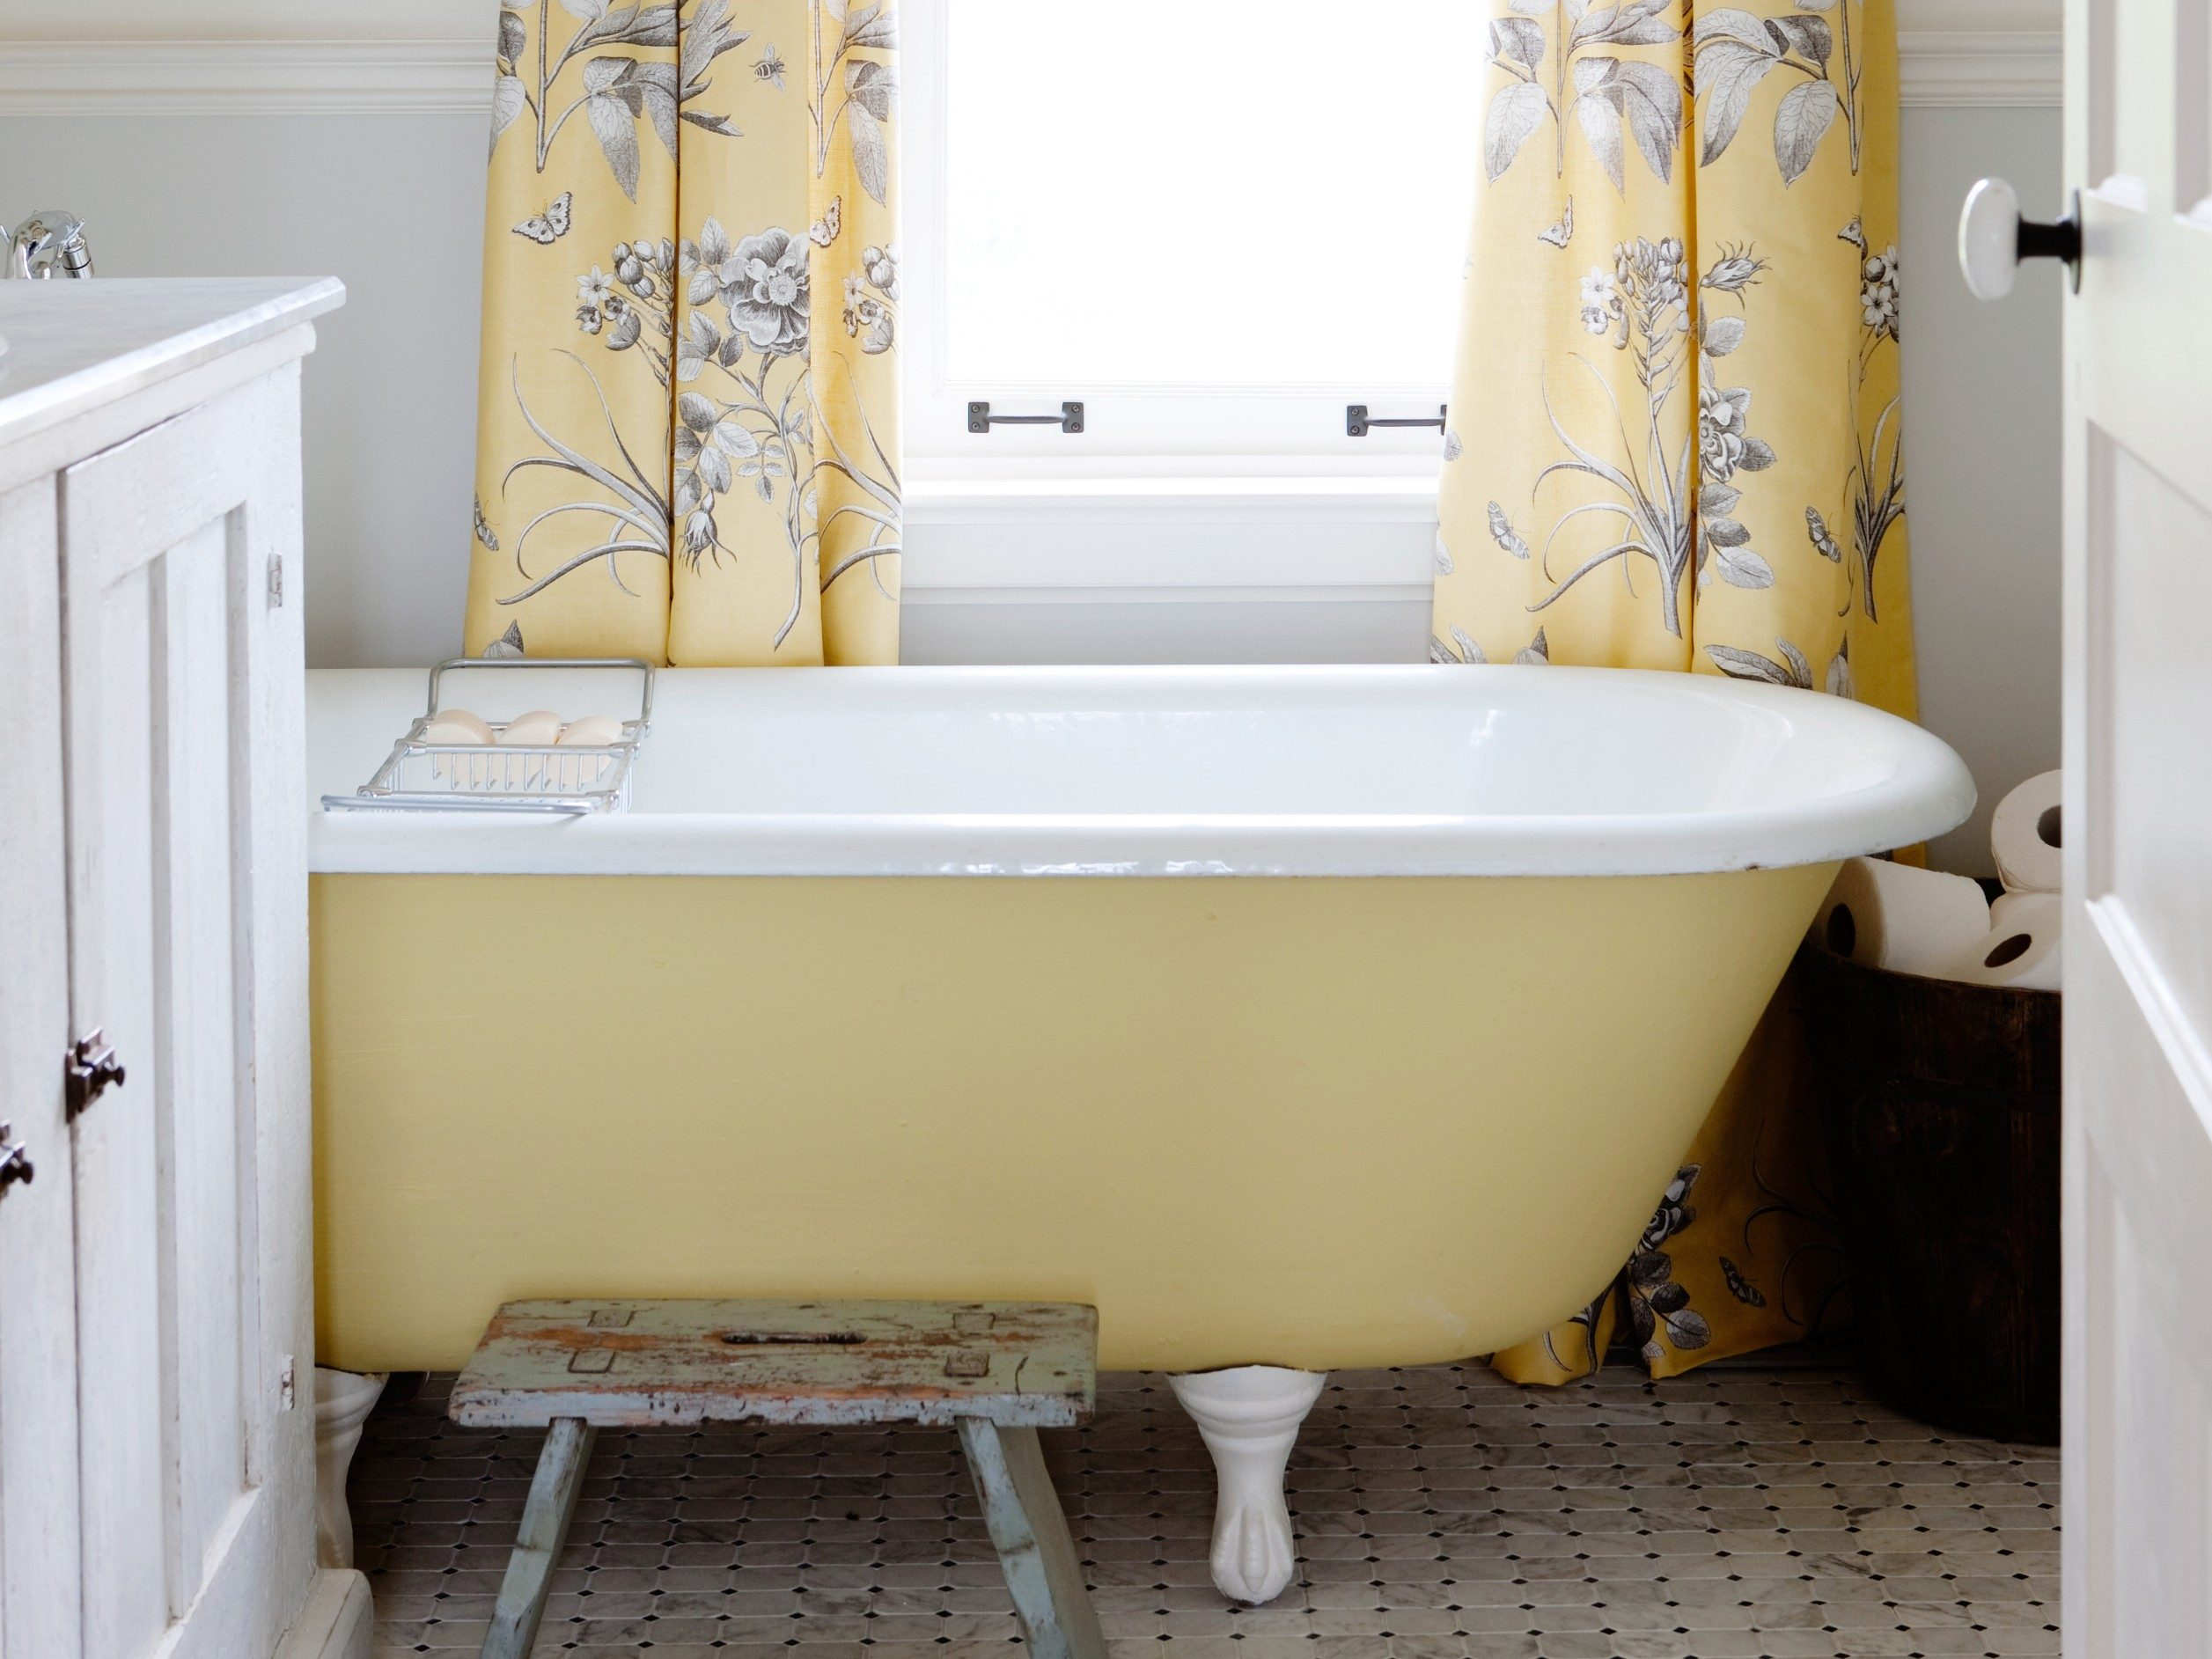 Thrifty decorating tip #4: Breathe new life into an old bathtub